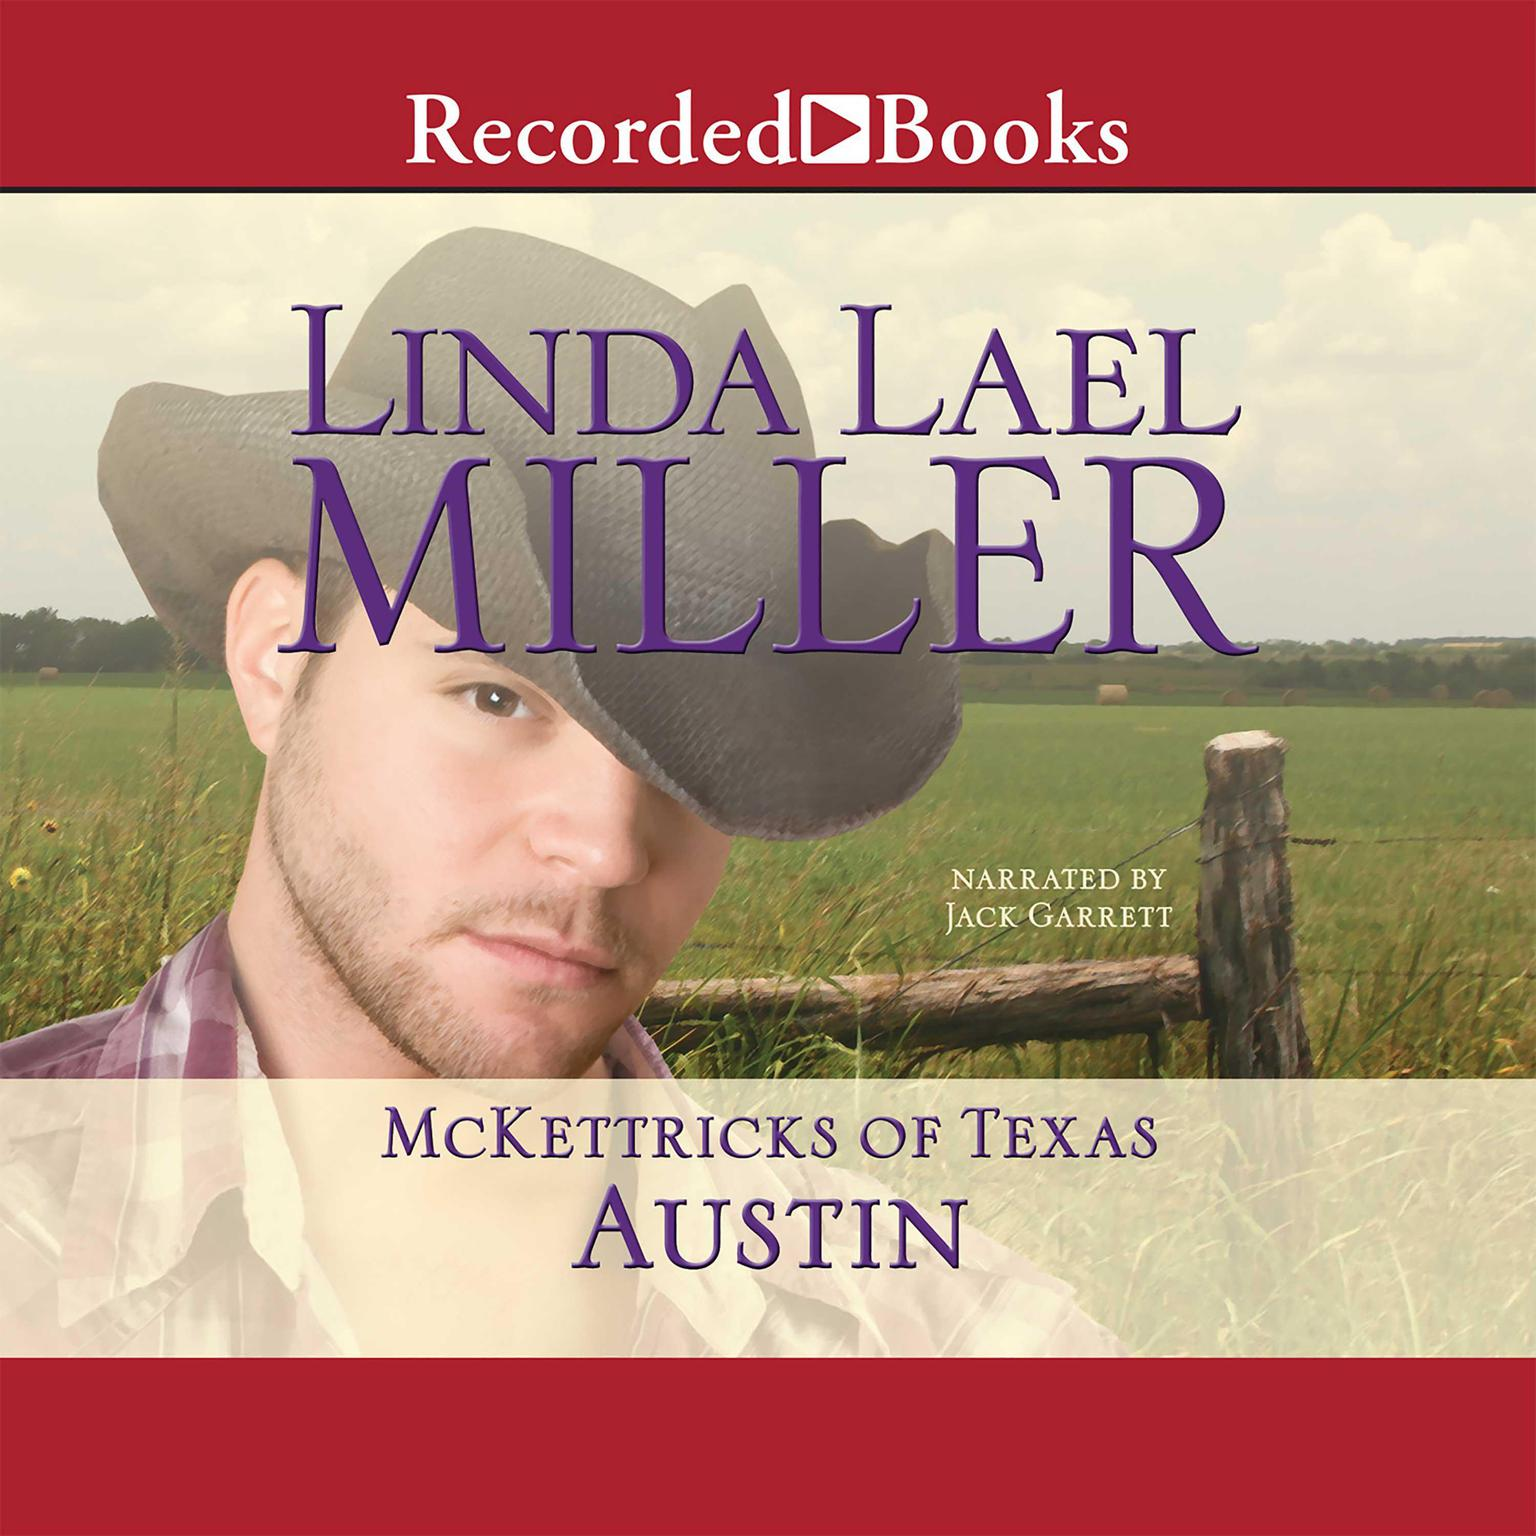 Printable McKettricks of Texas: Austin Audiobook Cover Art